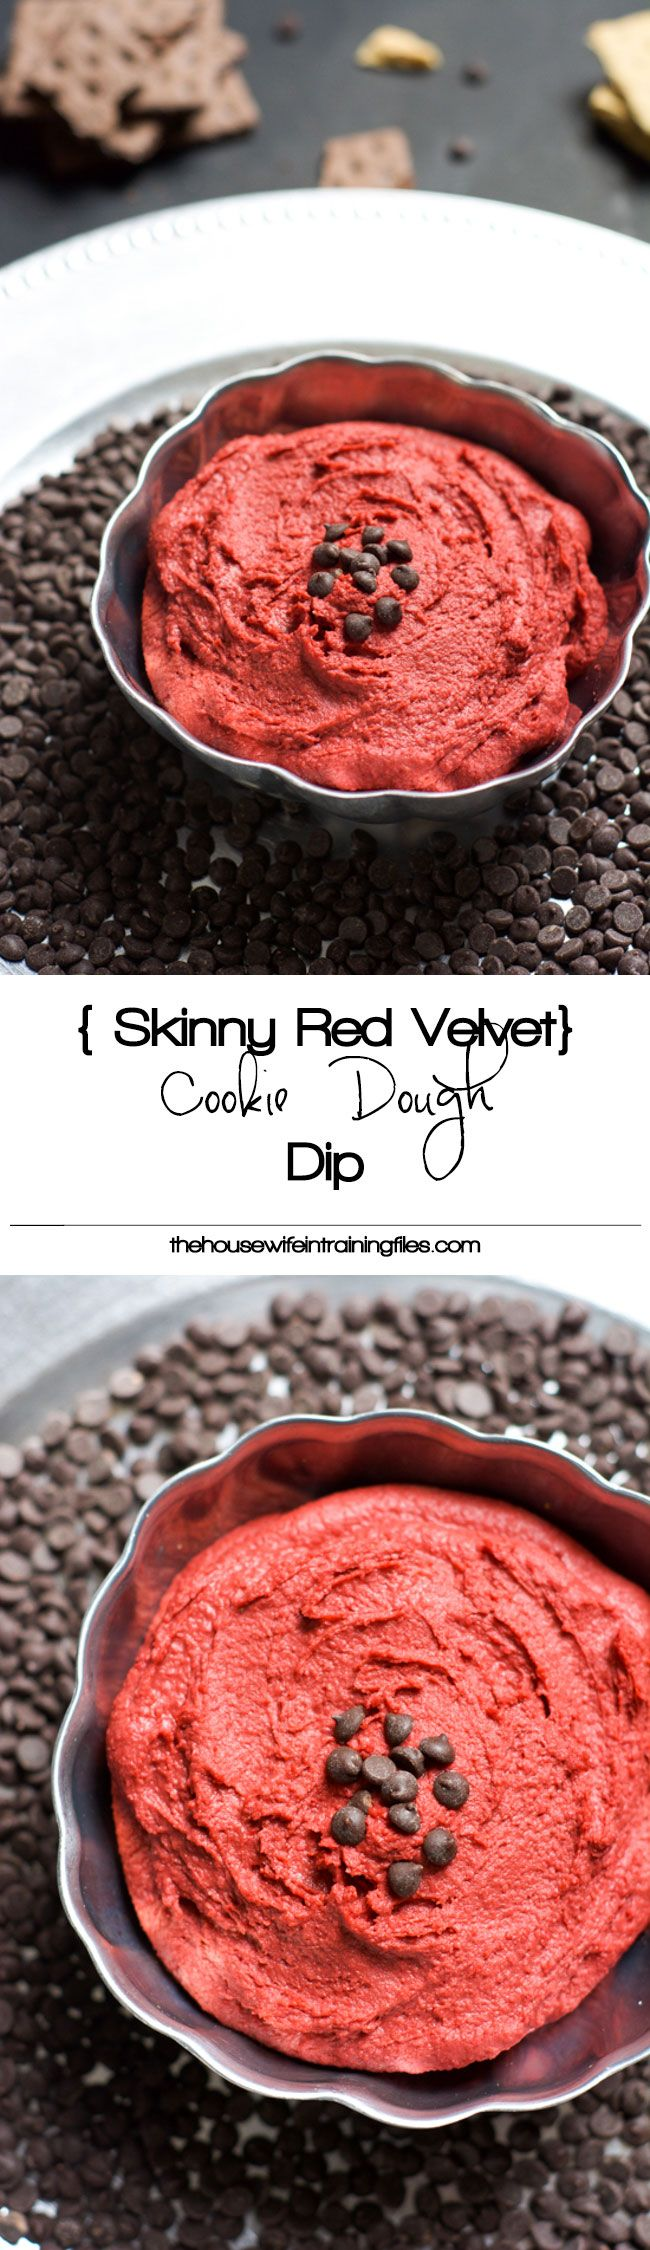 Skinny Red Velvet Cookie dough dip  http://thehousewifeintrainingfiles.com/skinny-red-velvet-cookie-dough-dip/